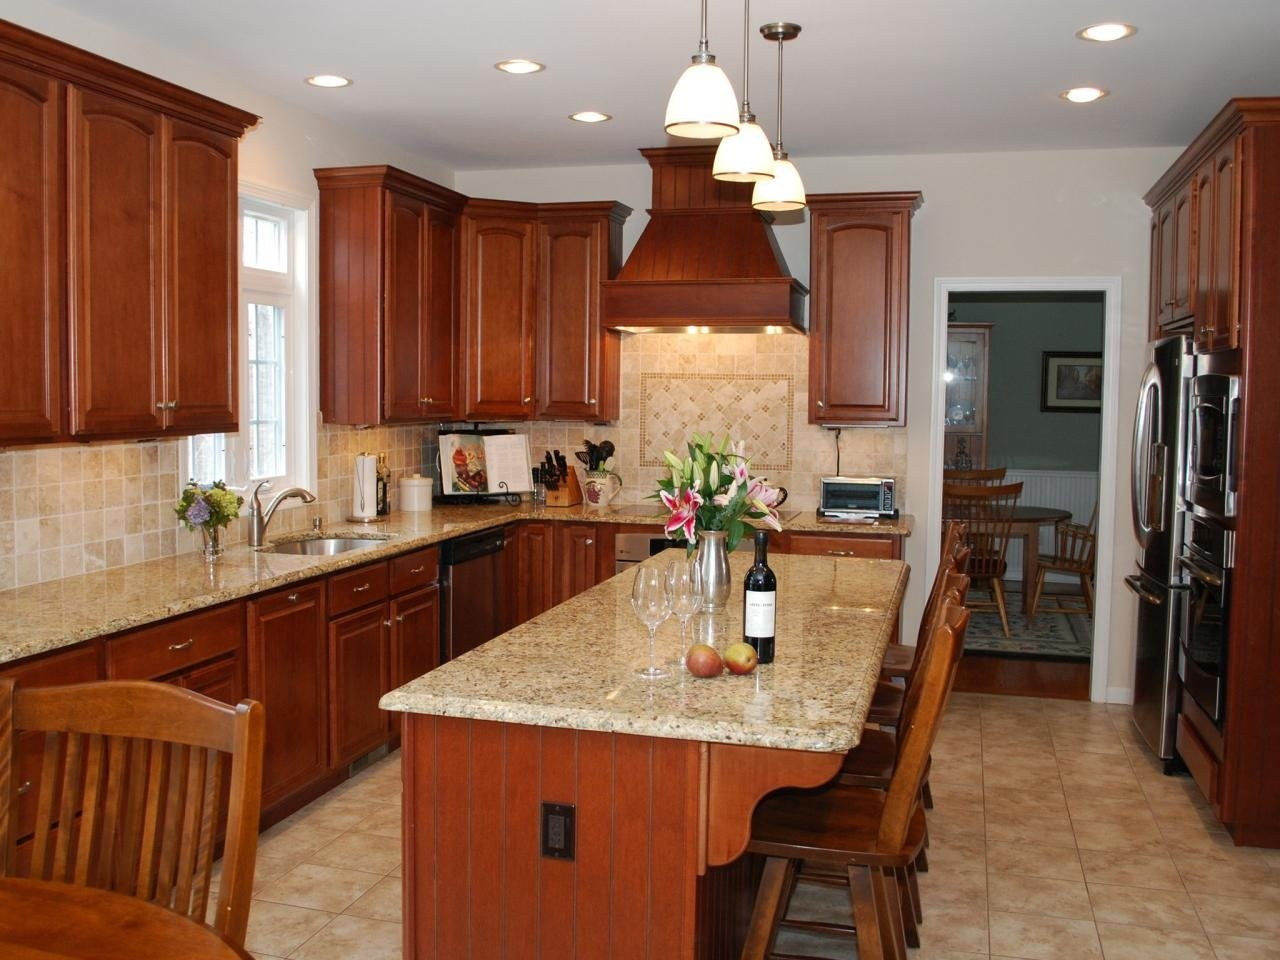 Medium wood kitchen cabinet image